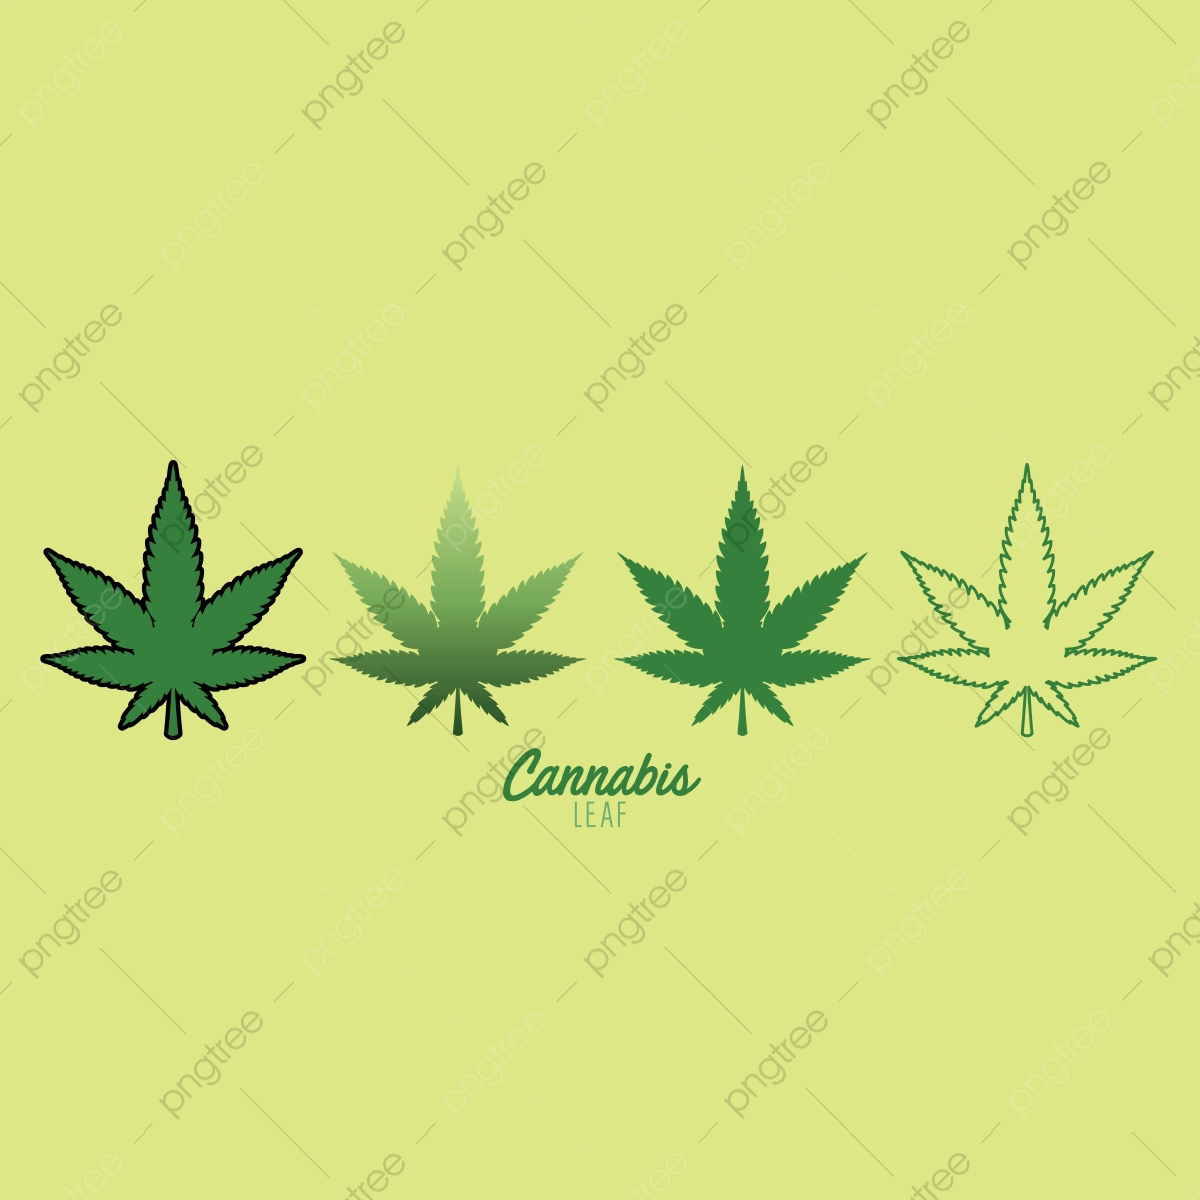 Cannabis Marijuana Weed Leaf Illustration Vector Leaf Cannabis Plant Png And Vector With Transparent Background For Free Download